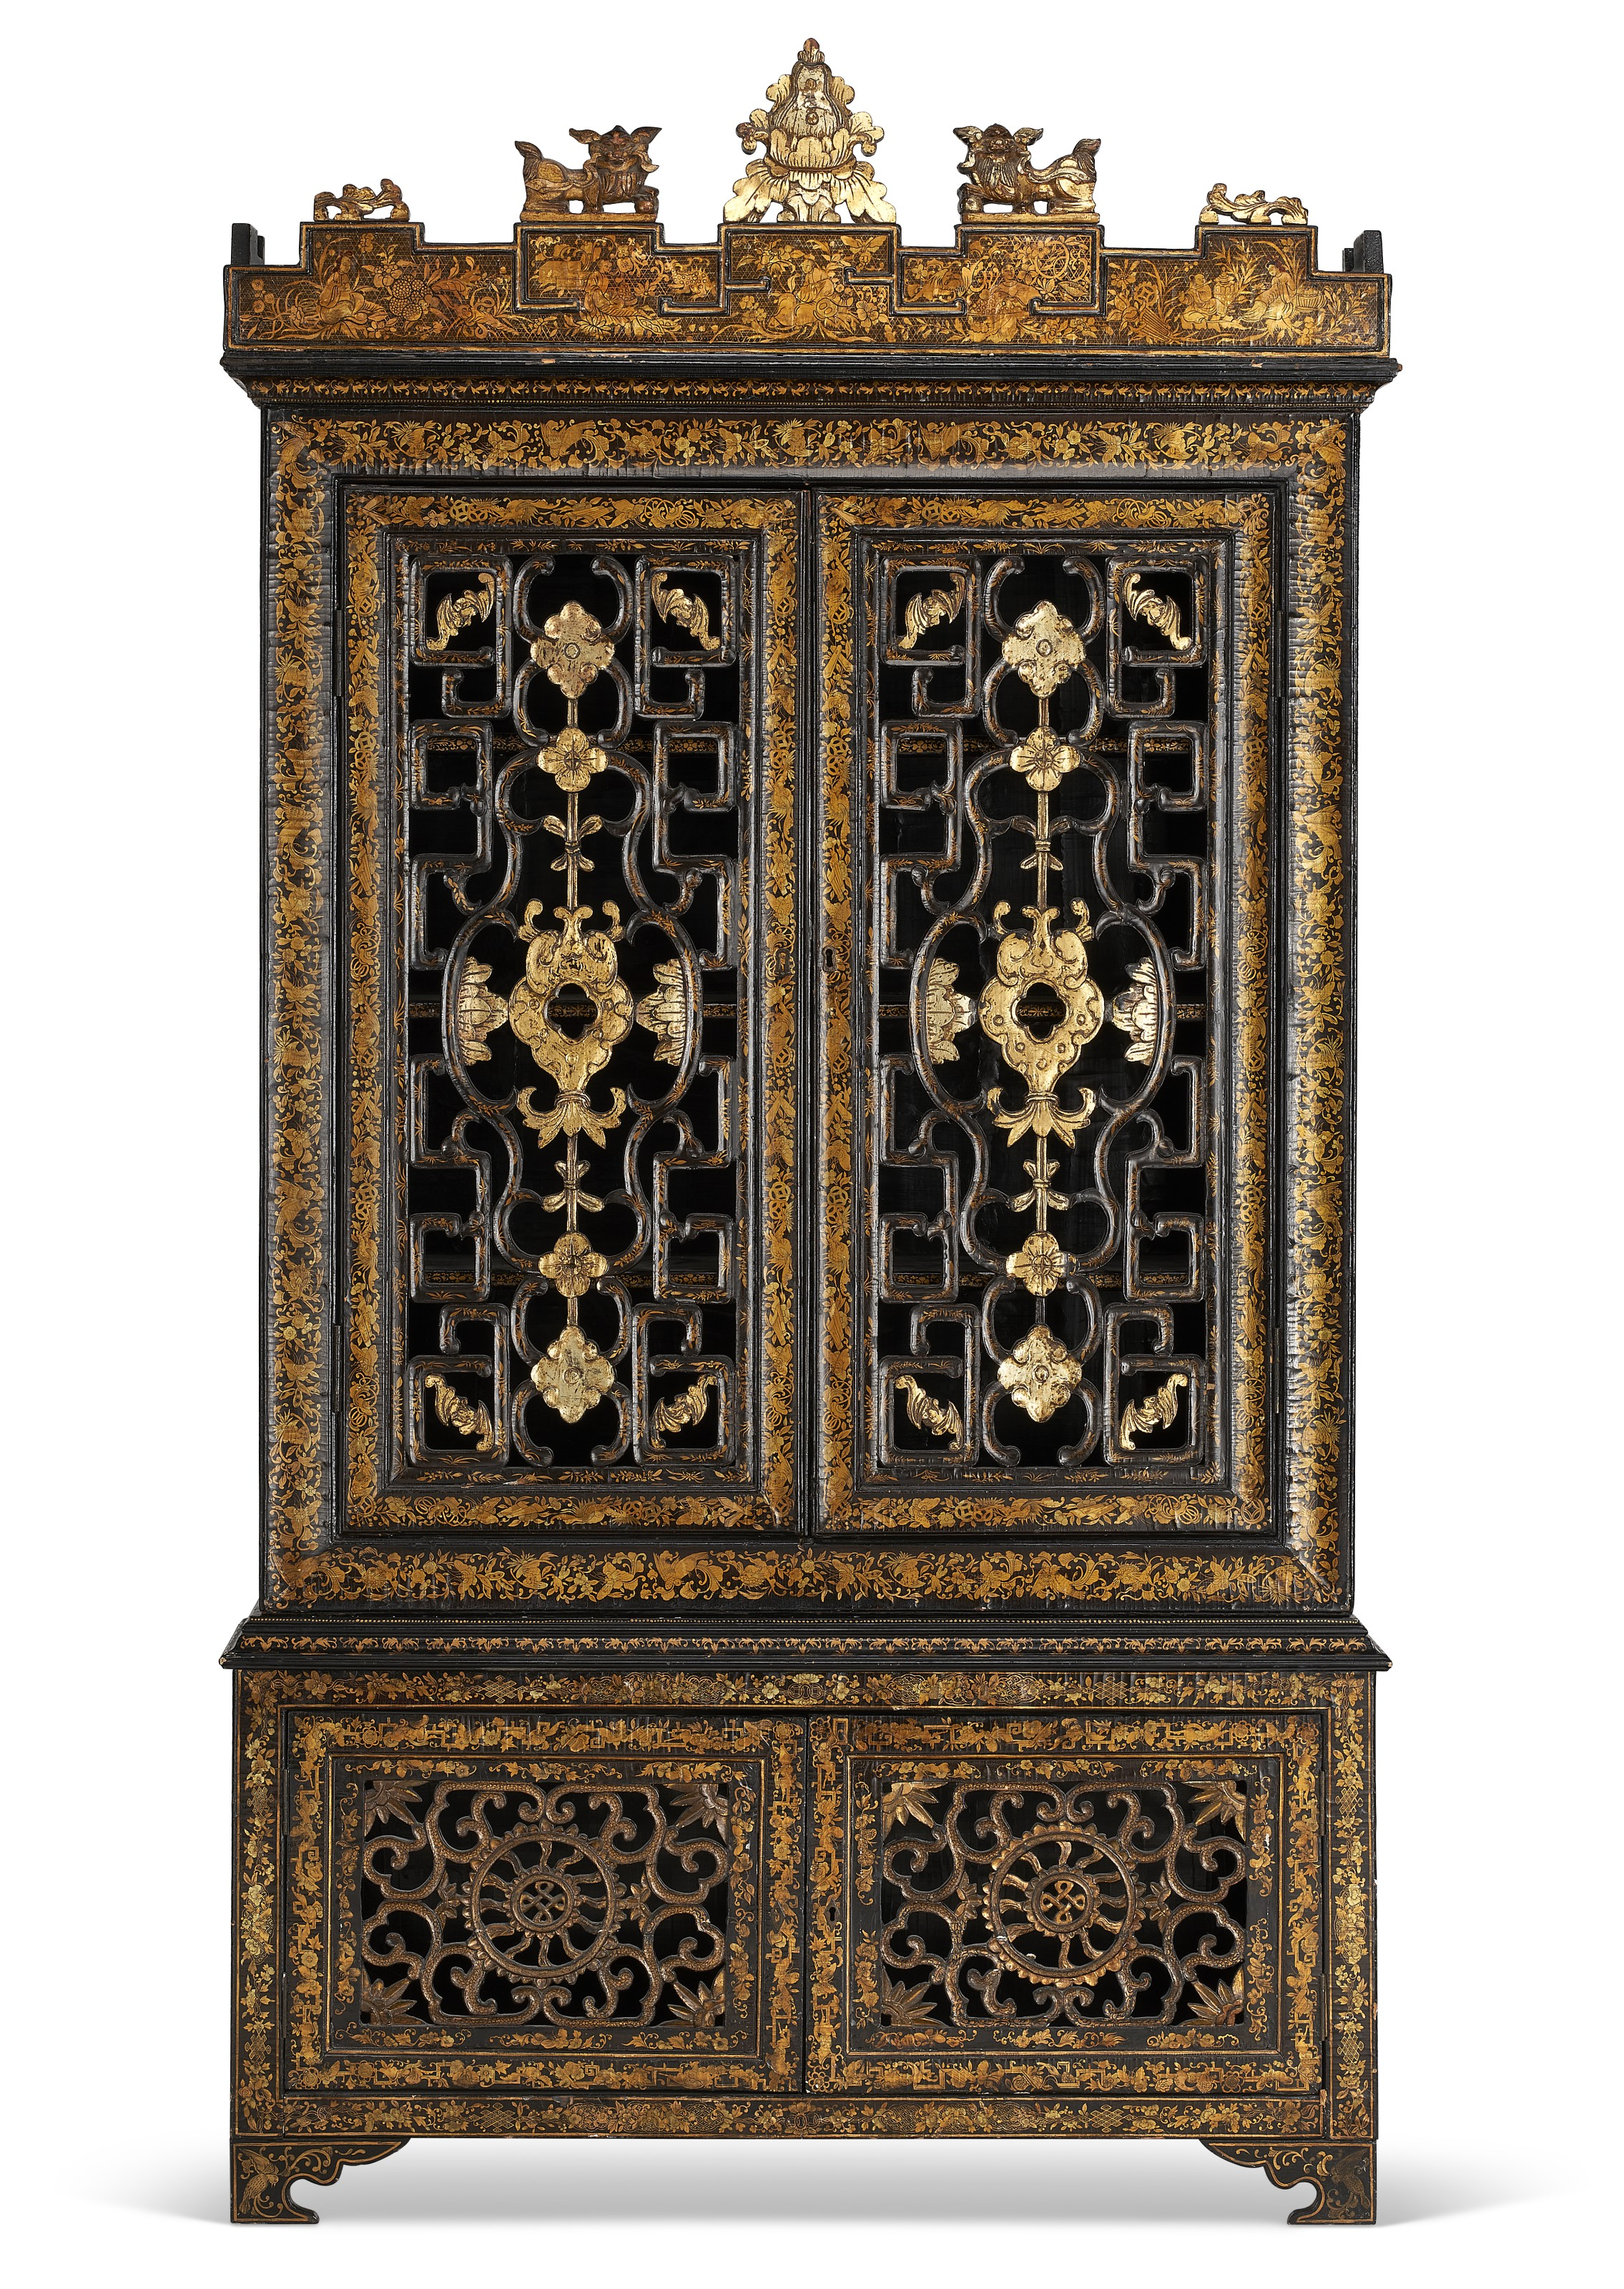 A Chinese export black and gilt-lacquer cabinet, Qing dynasty, second quarter 19th century. 90¼  in (229.2  cm) high, 47¼  in (120  cm) wide, 13¼  in (33.7  cm) deep. Estimate $8,000-12,000. Offered in The Collector English & European Furniture, Ceramics, Silver & Works of Art on 5-19 October 2021 at Christie's Online